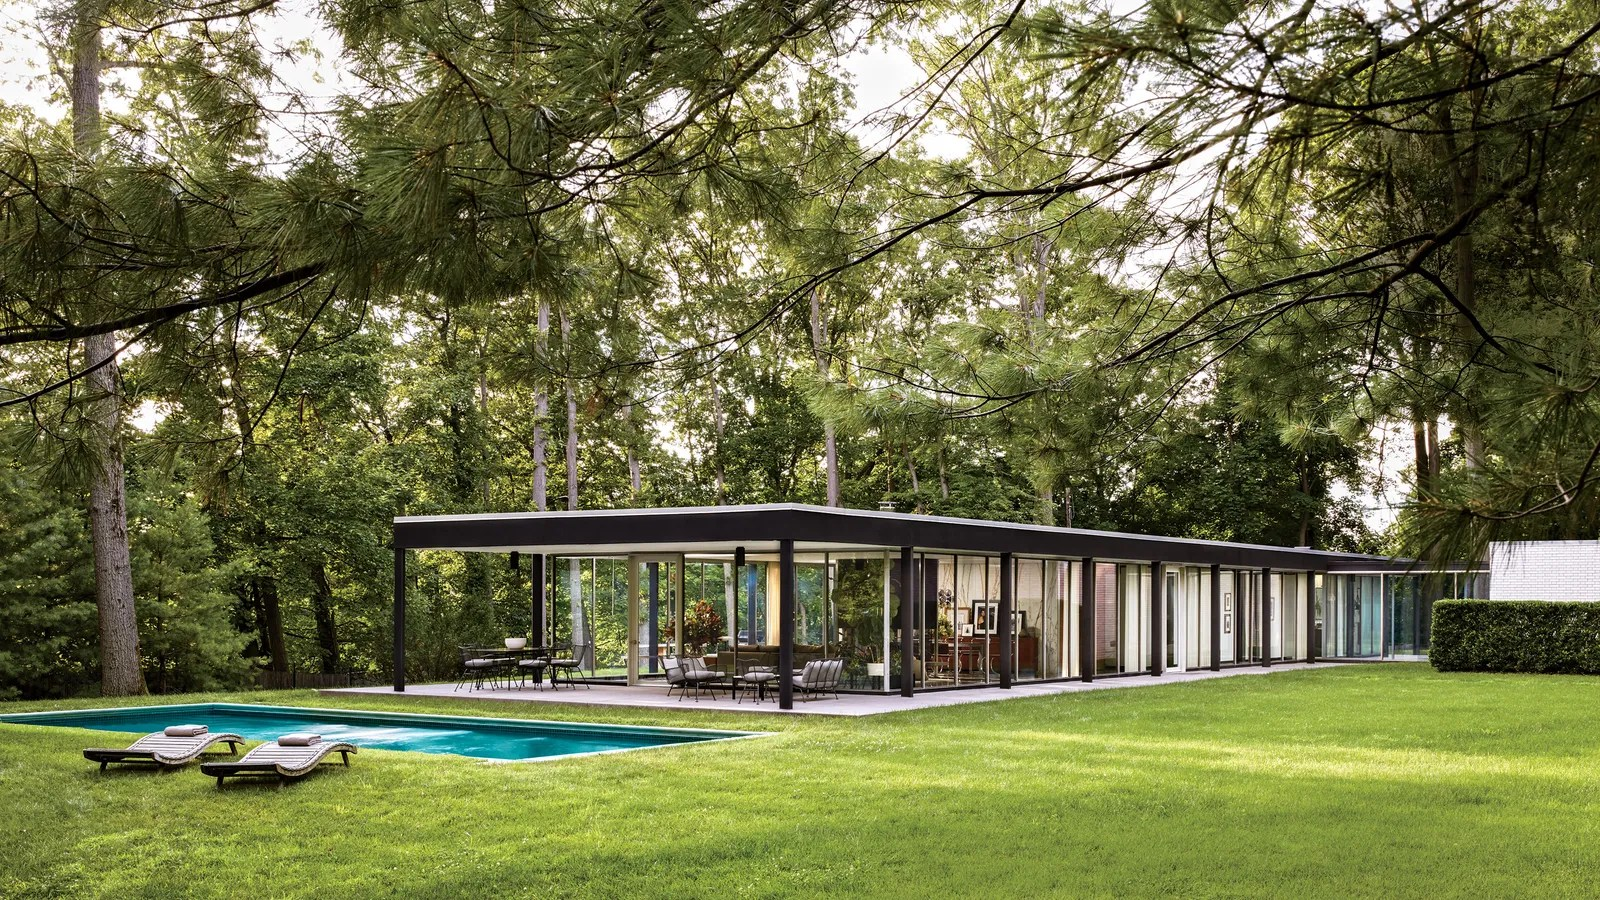 Glass House Design Photos   Architectural Digest on Glass House Design Ideas  id=13230